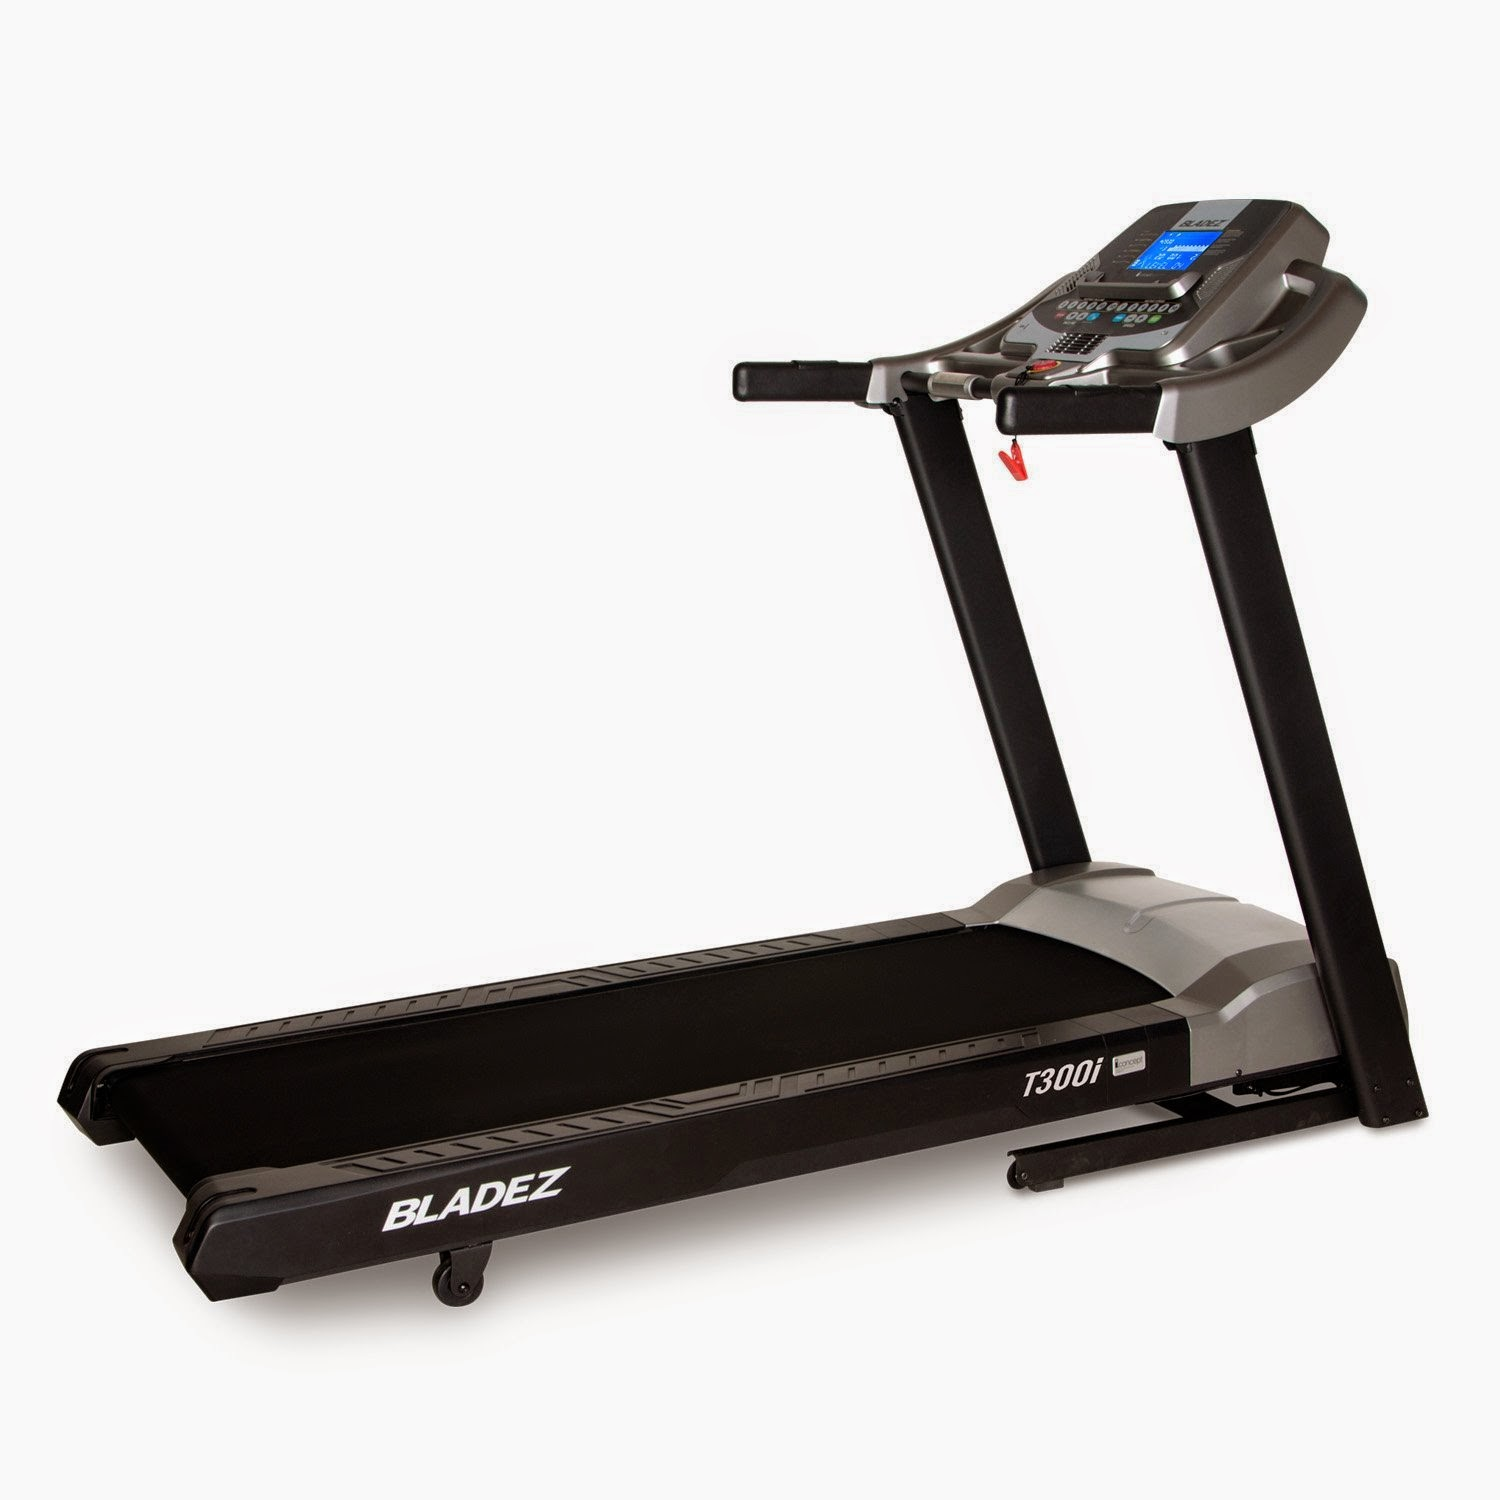 Bladez Fitness T300i Treadmill, review plus compare with T500i